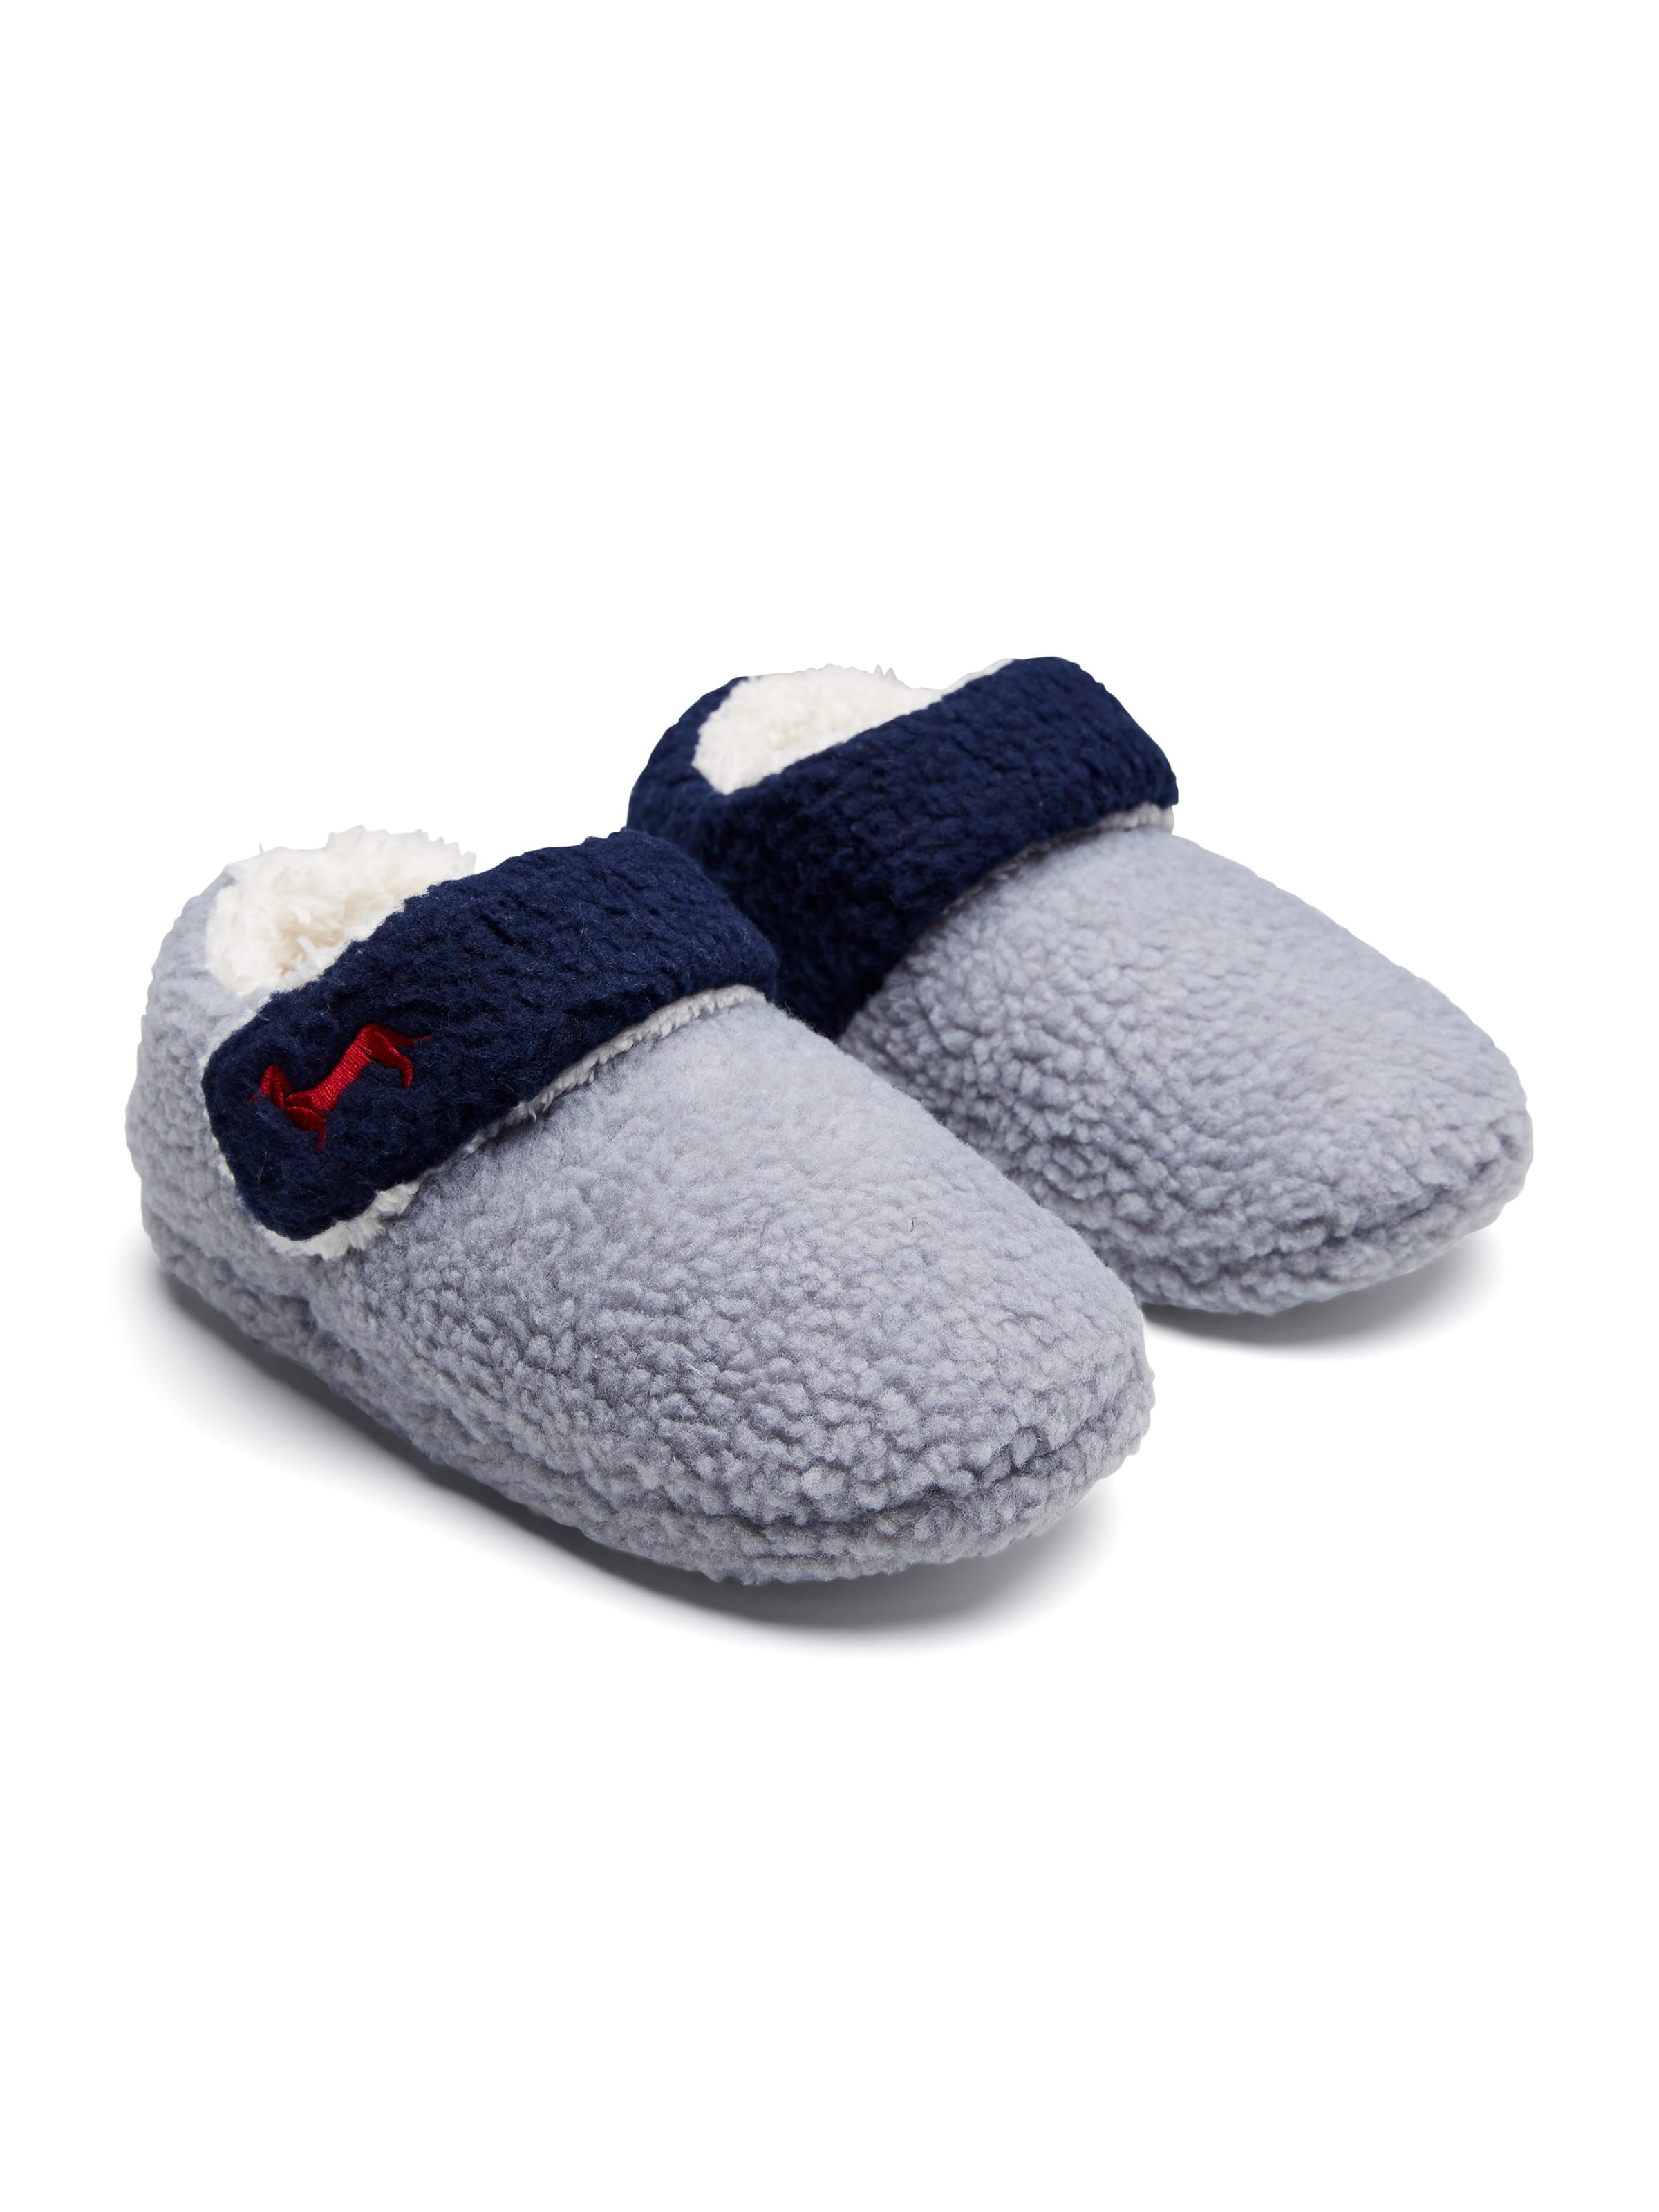 Kids Strap Slipper Boot